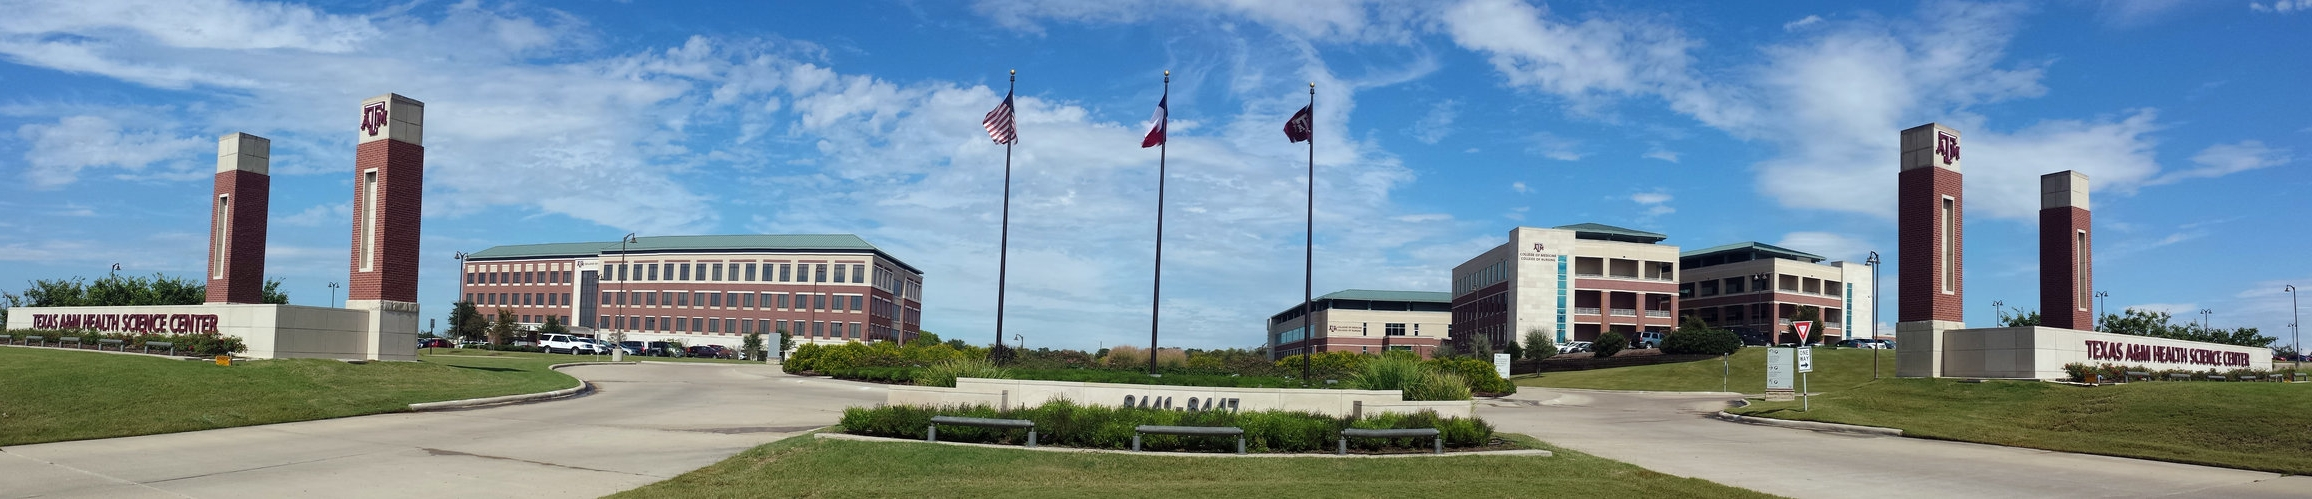 The Texas A&M University Health Science Center in Bryan, Tx. Photo by Dr.Xin Wu.